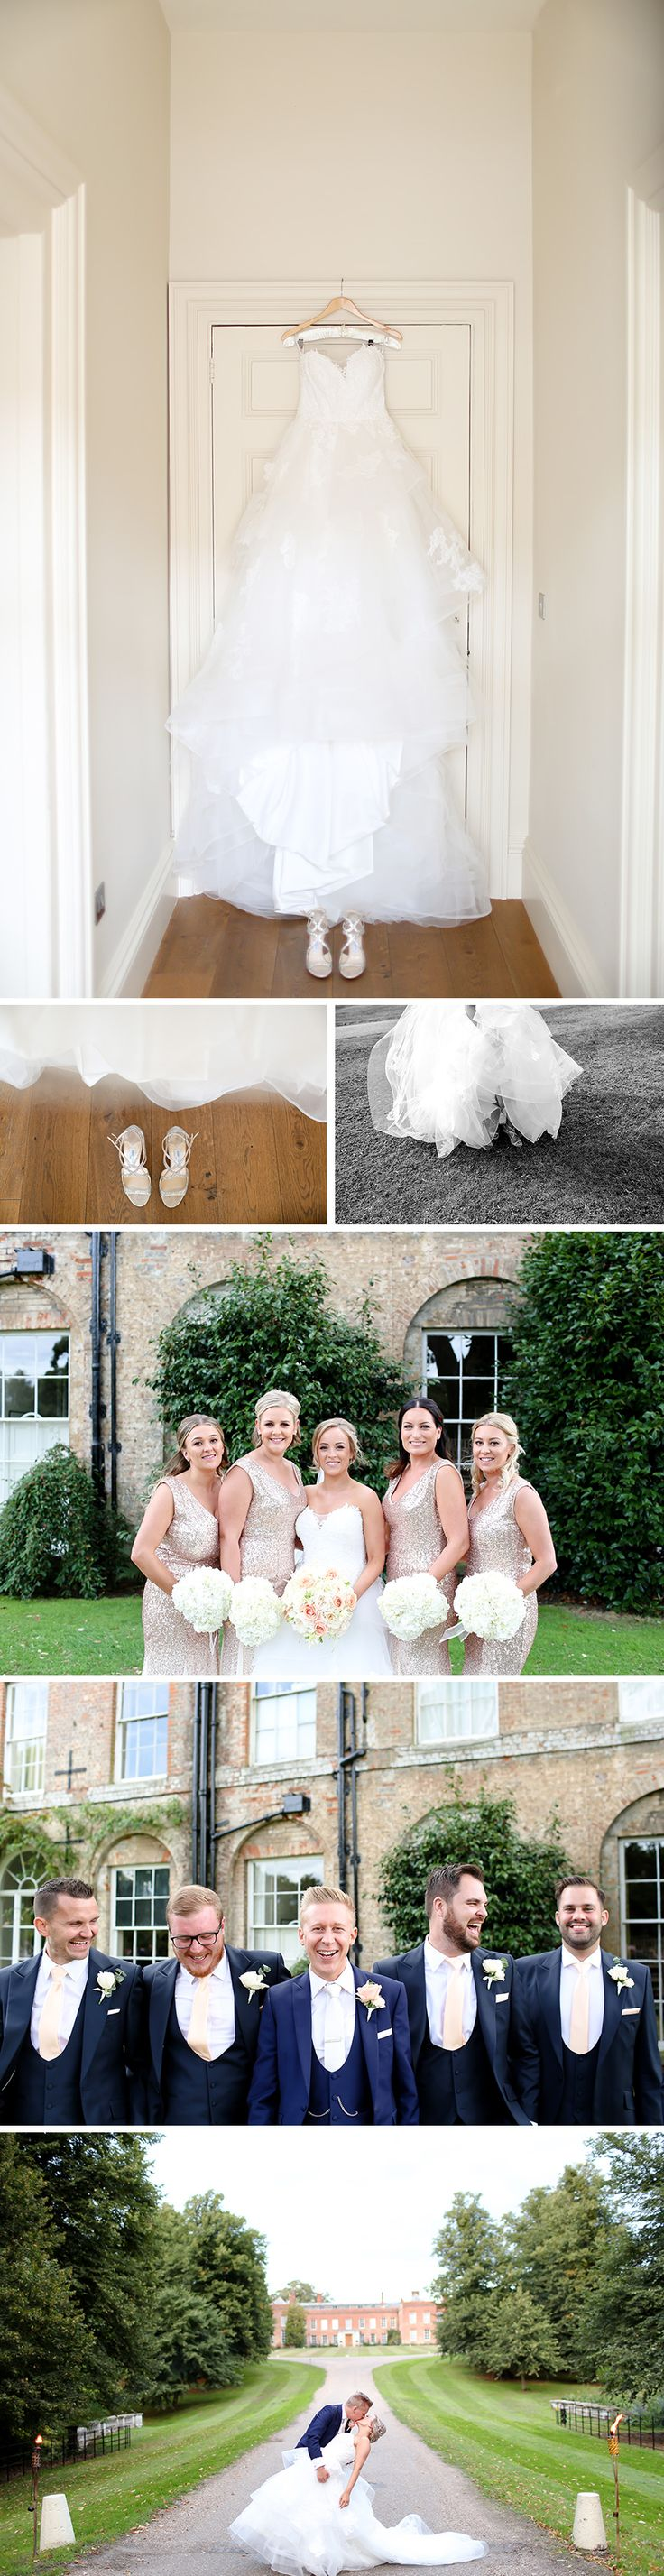 Real Wedding – Sophie and Tom's Champagne-Theme Wedding At Braxted Park | CHWV